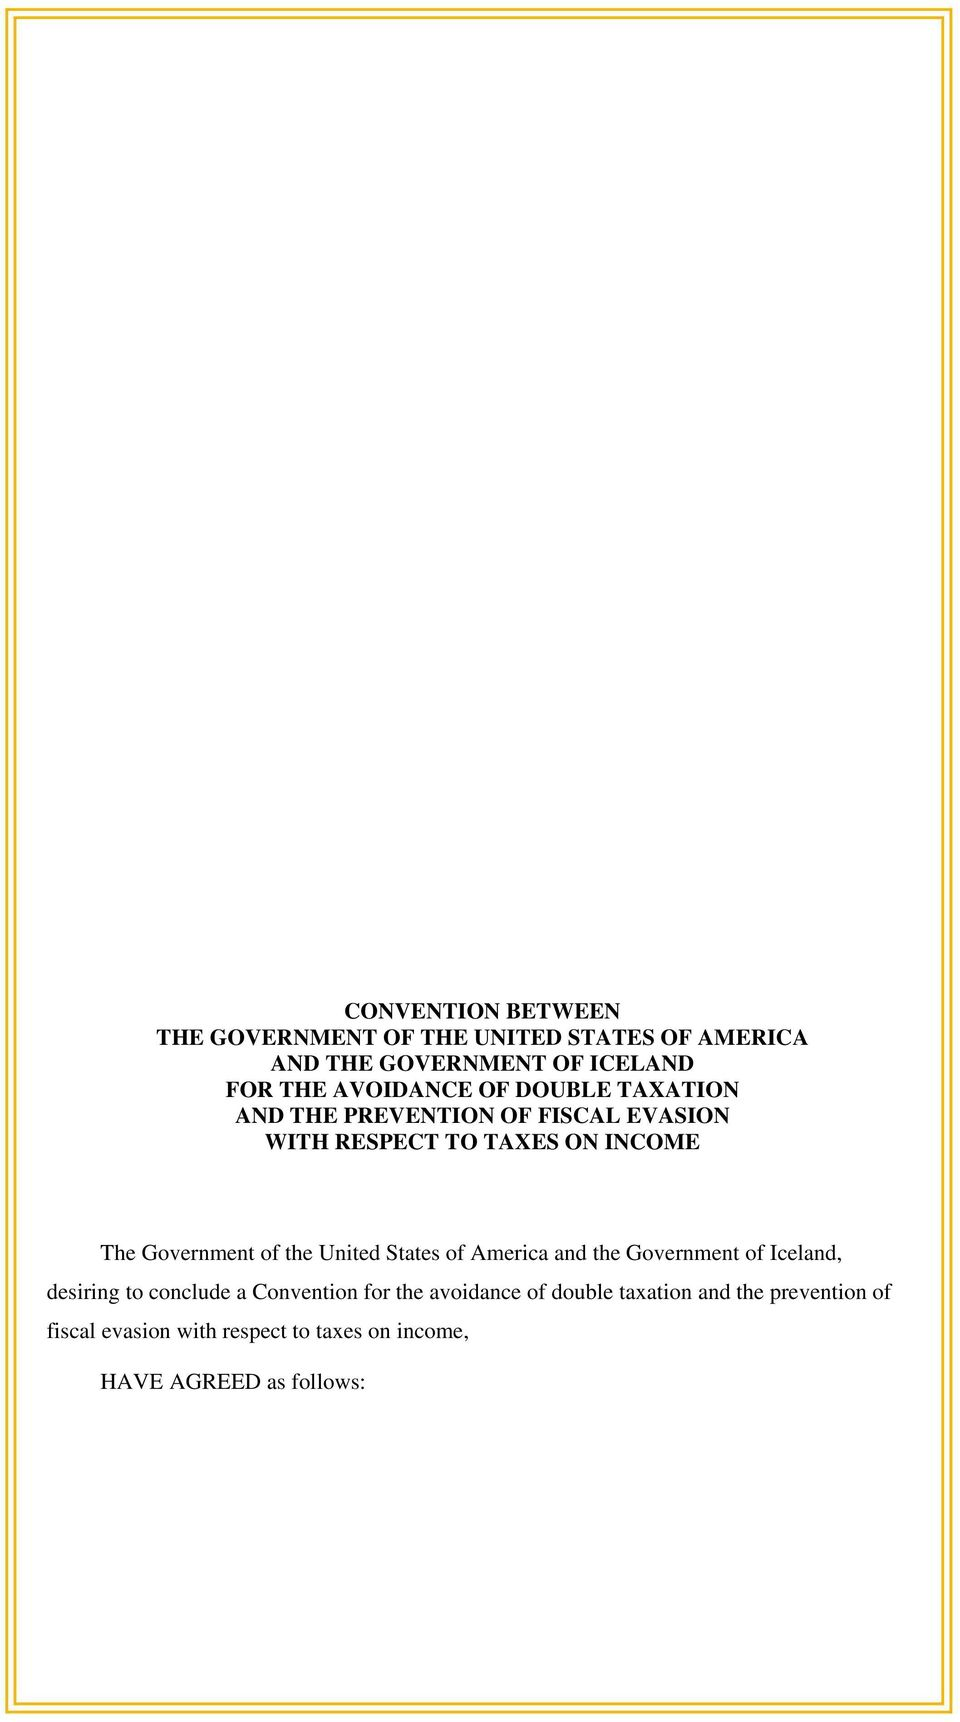 Government of the United States of America and the Government of Iceland, desiring to conclude a Convention